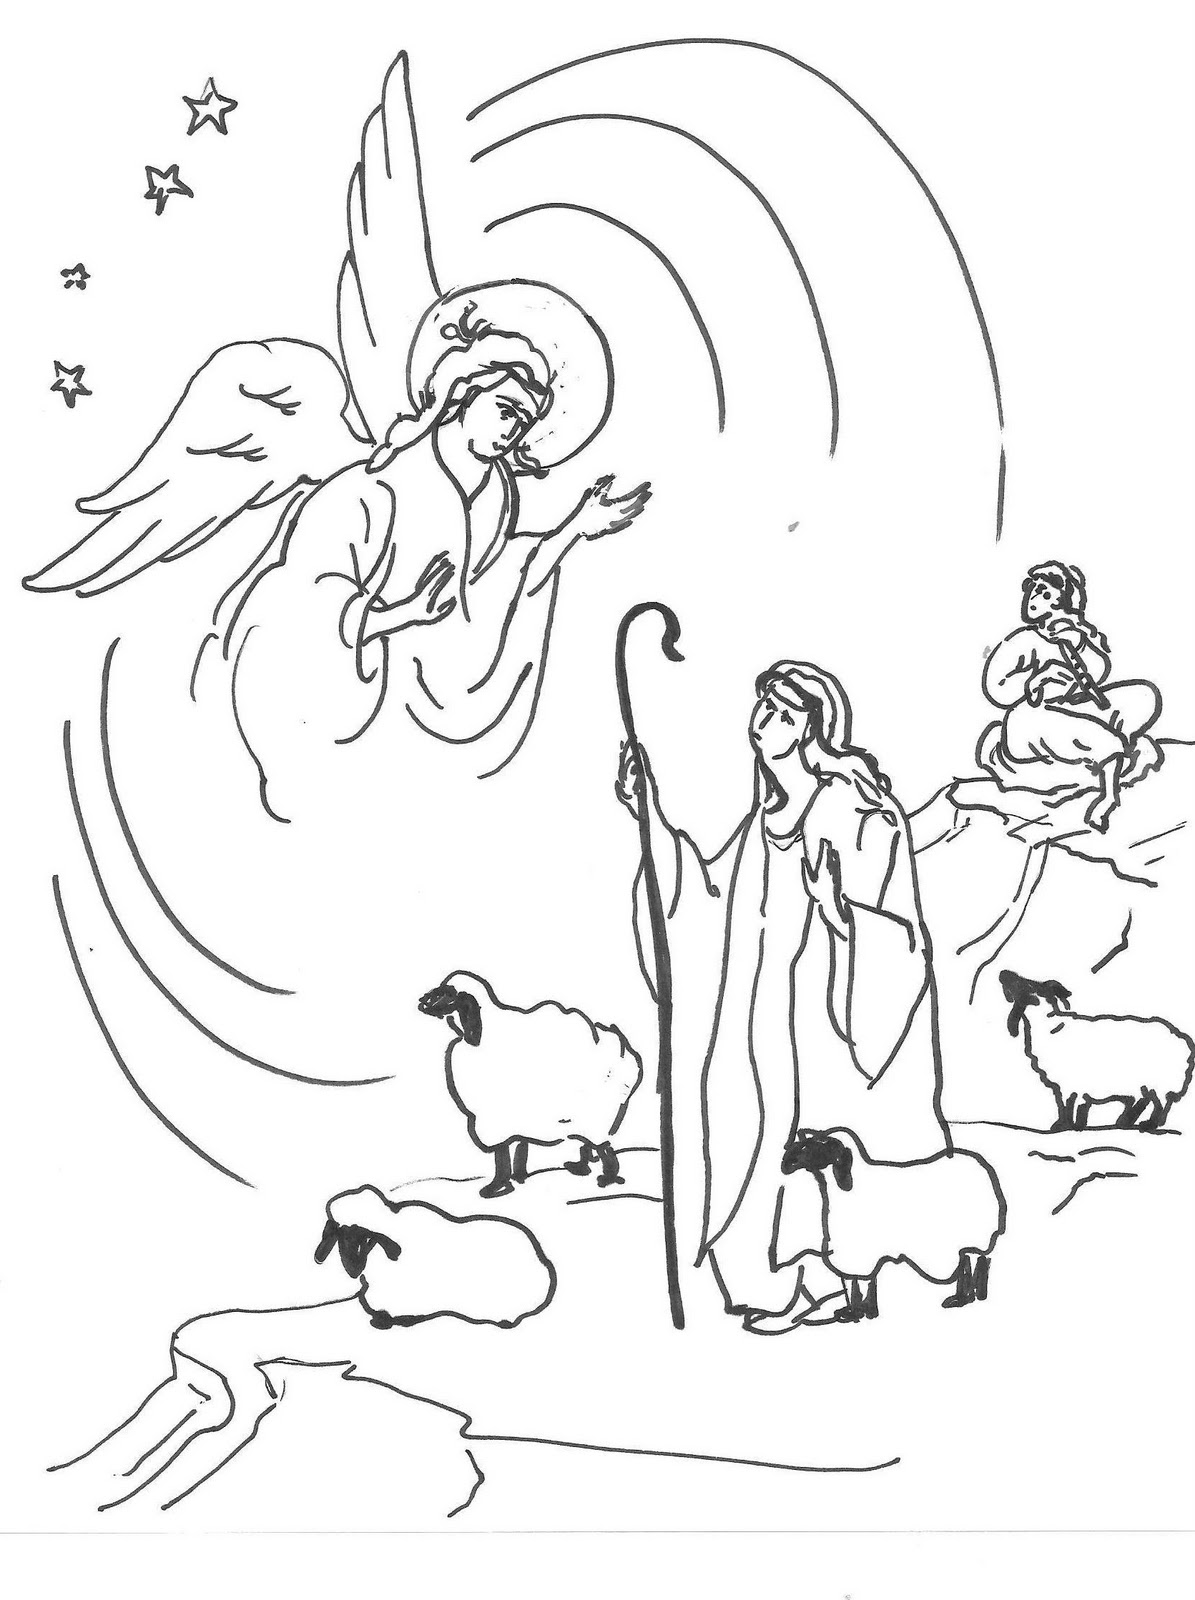 worship the lord coloring pages - photo#23